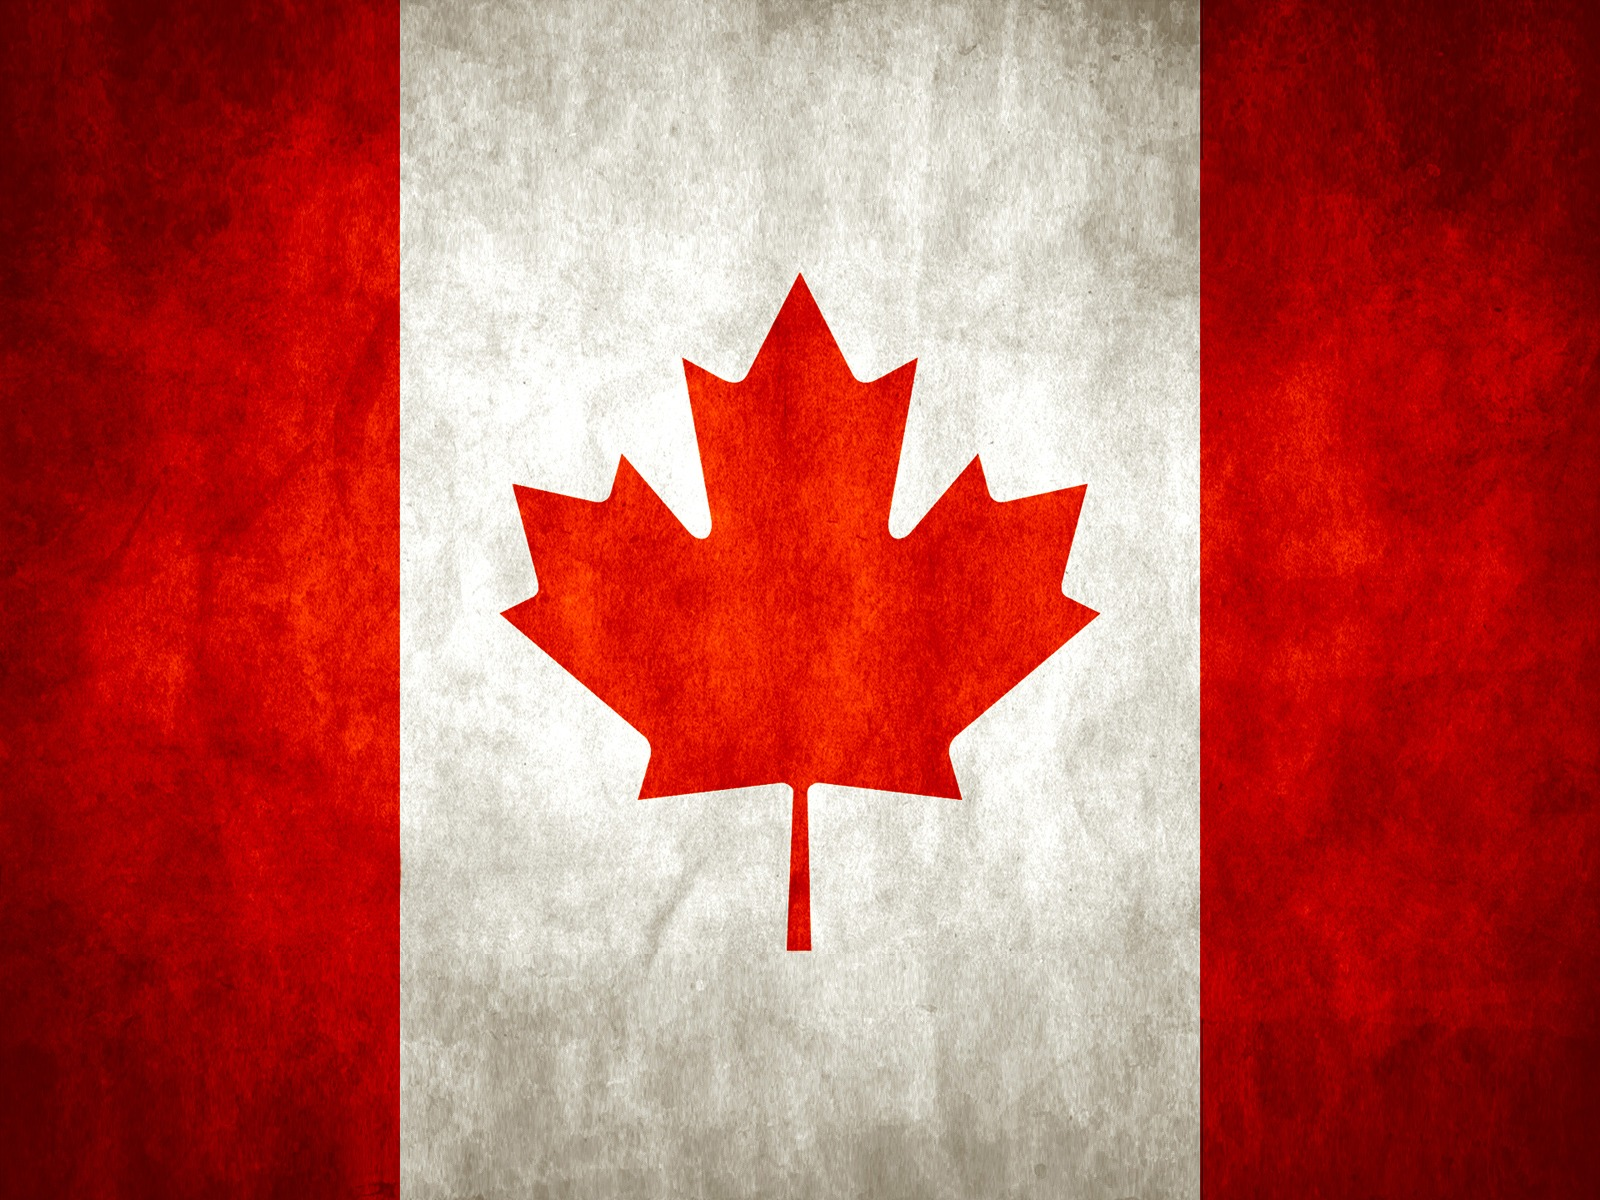 Canada flag wallpaper canada world wallpapers in jpg format for free download - Canada flag 3d wallpaper ...